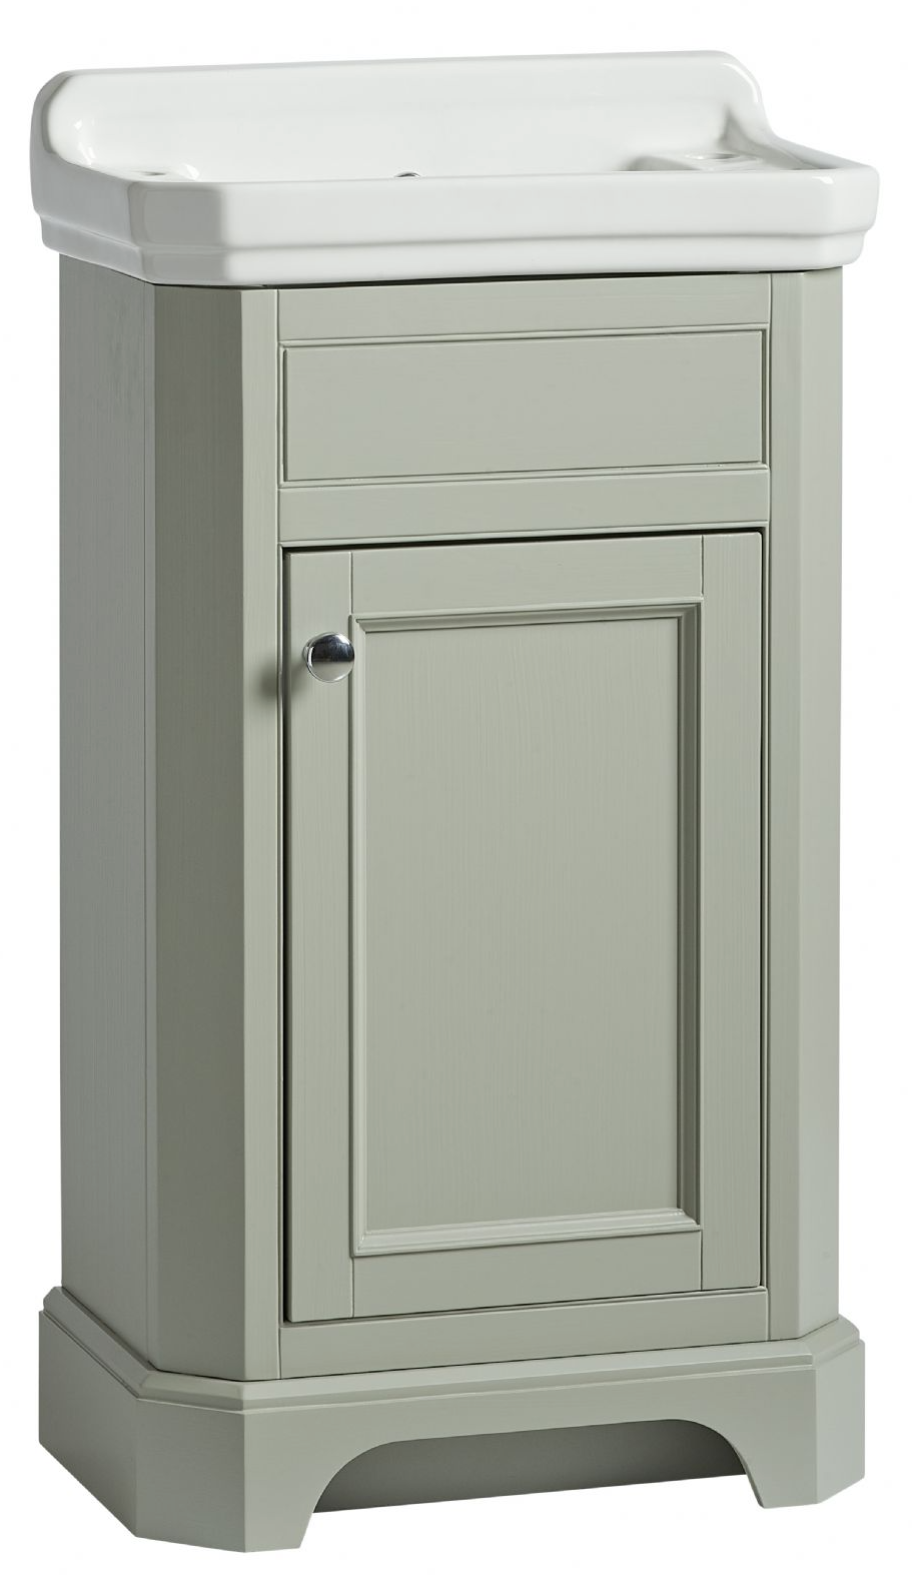 Tavistock Vitoria Pebble Grey Cloakroom Unit Amp Basin